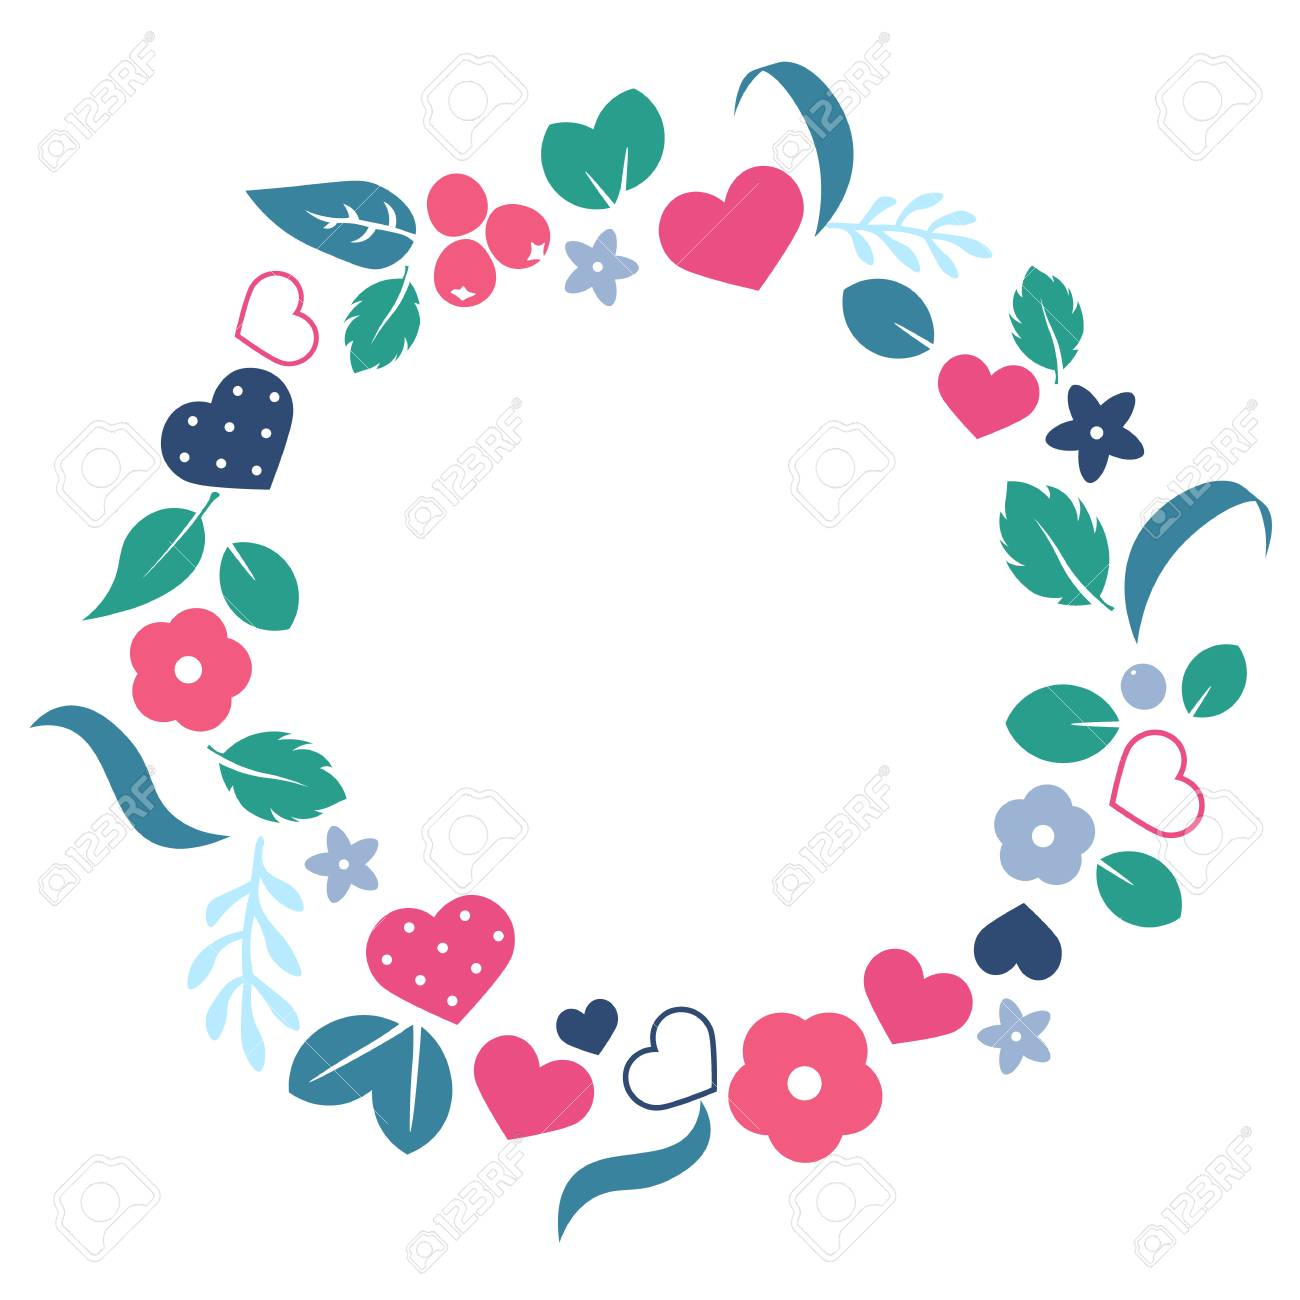 Vector Love Frame With Hearts And Flowers Creative Design For